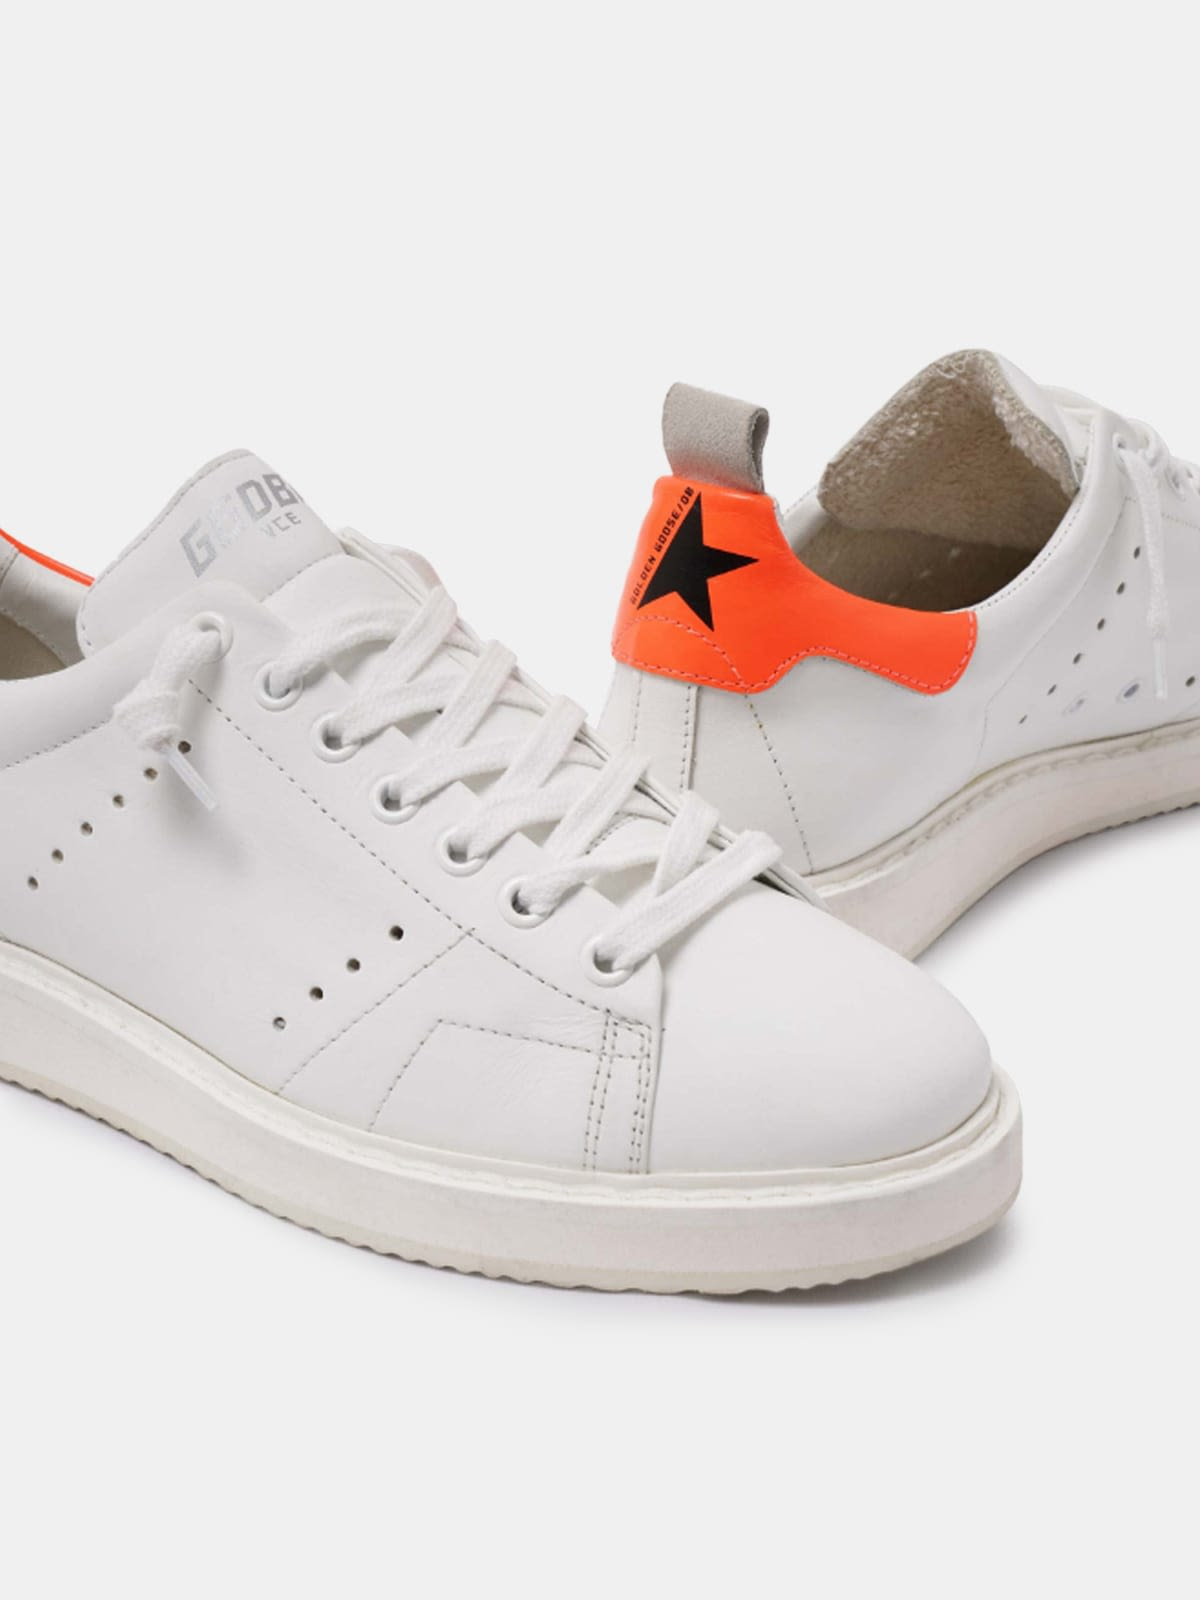 White Starter sneakers with fluorescent orange heel tab